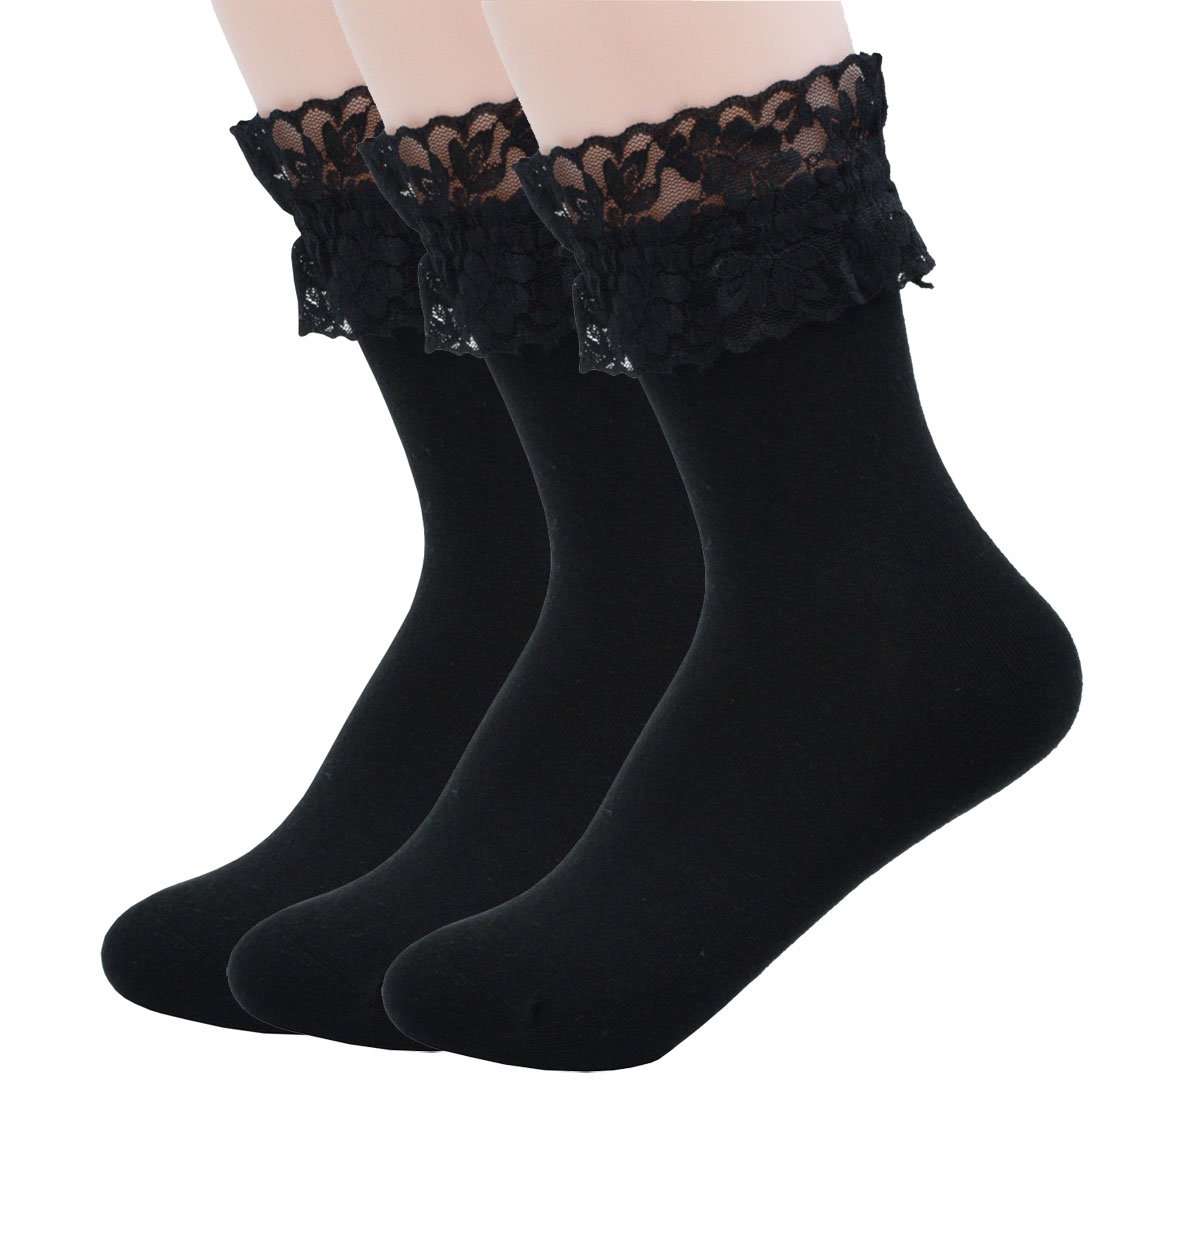 YJLSO Women Lace Ruffle Frilly Cotton Socks Princess Socks Ankle Socks,Many styles and a variety of colors (G-Black),One Size